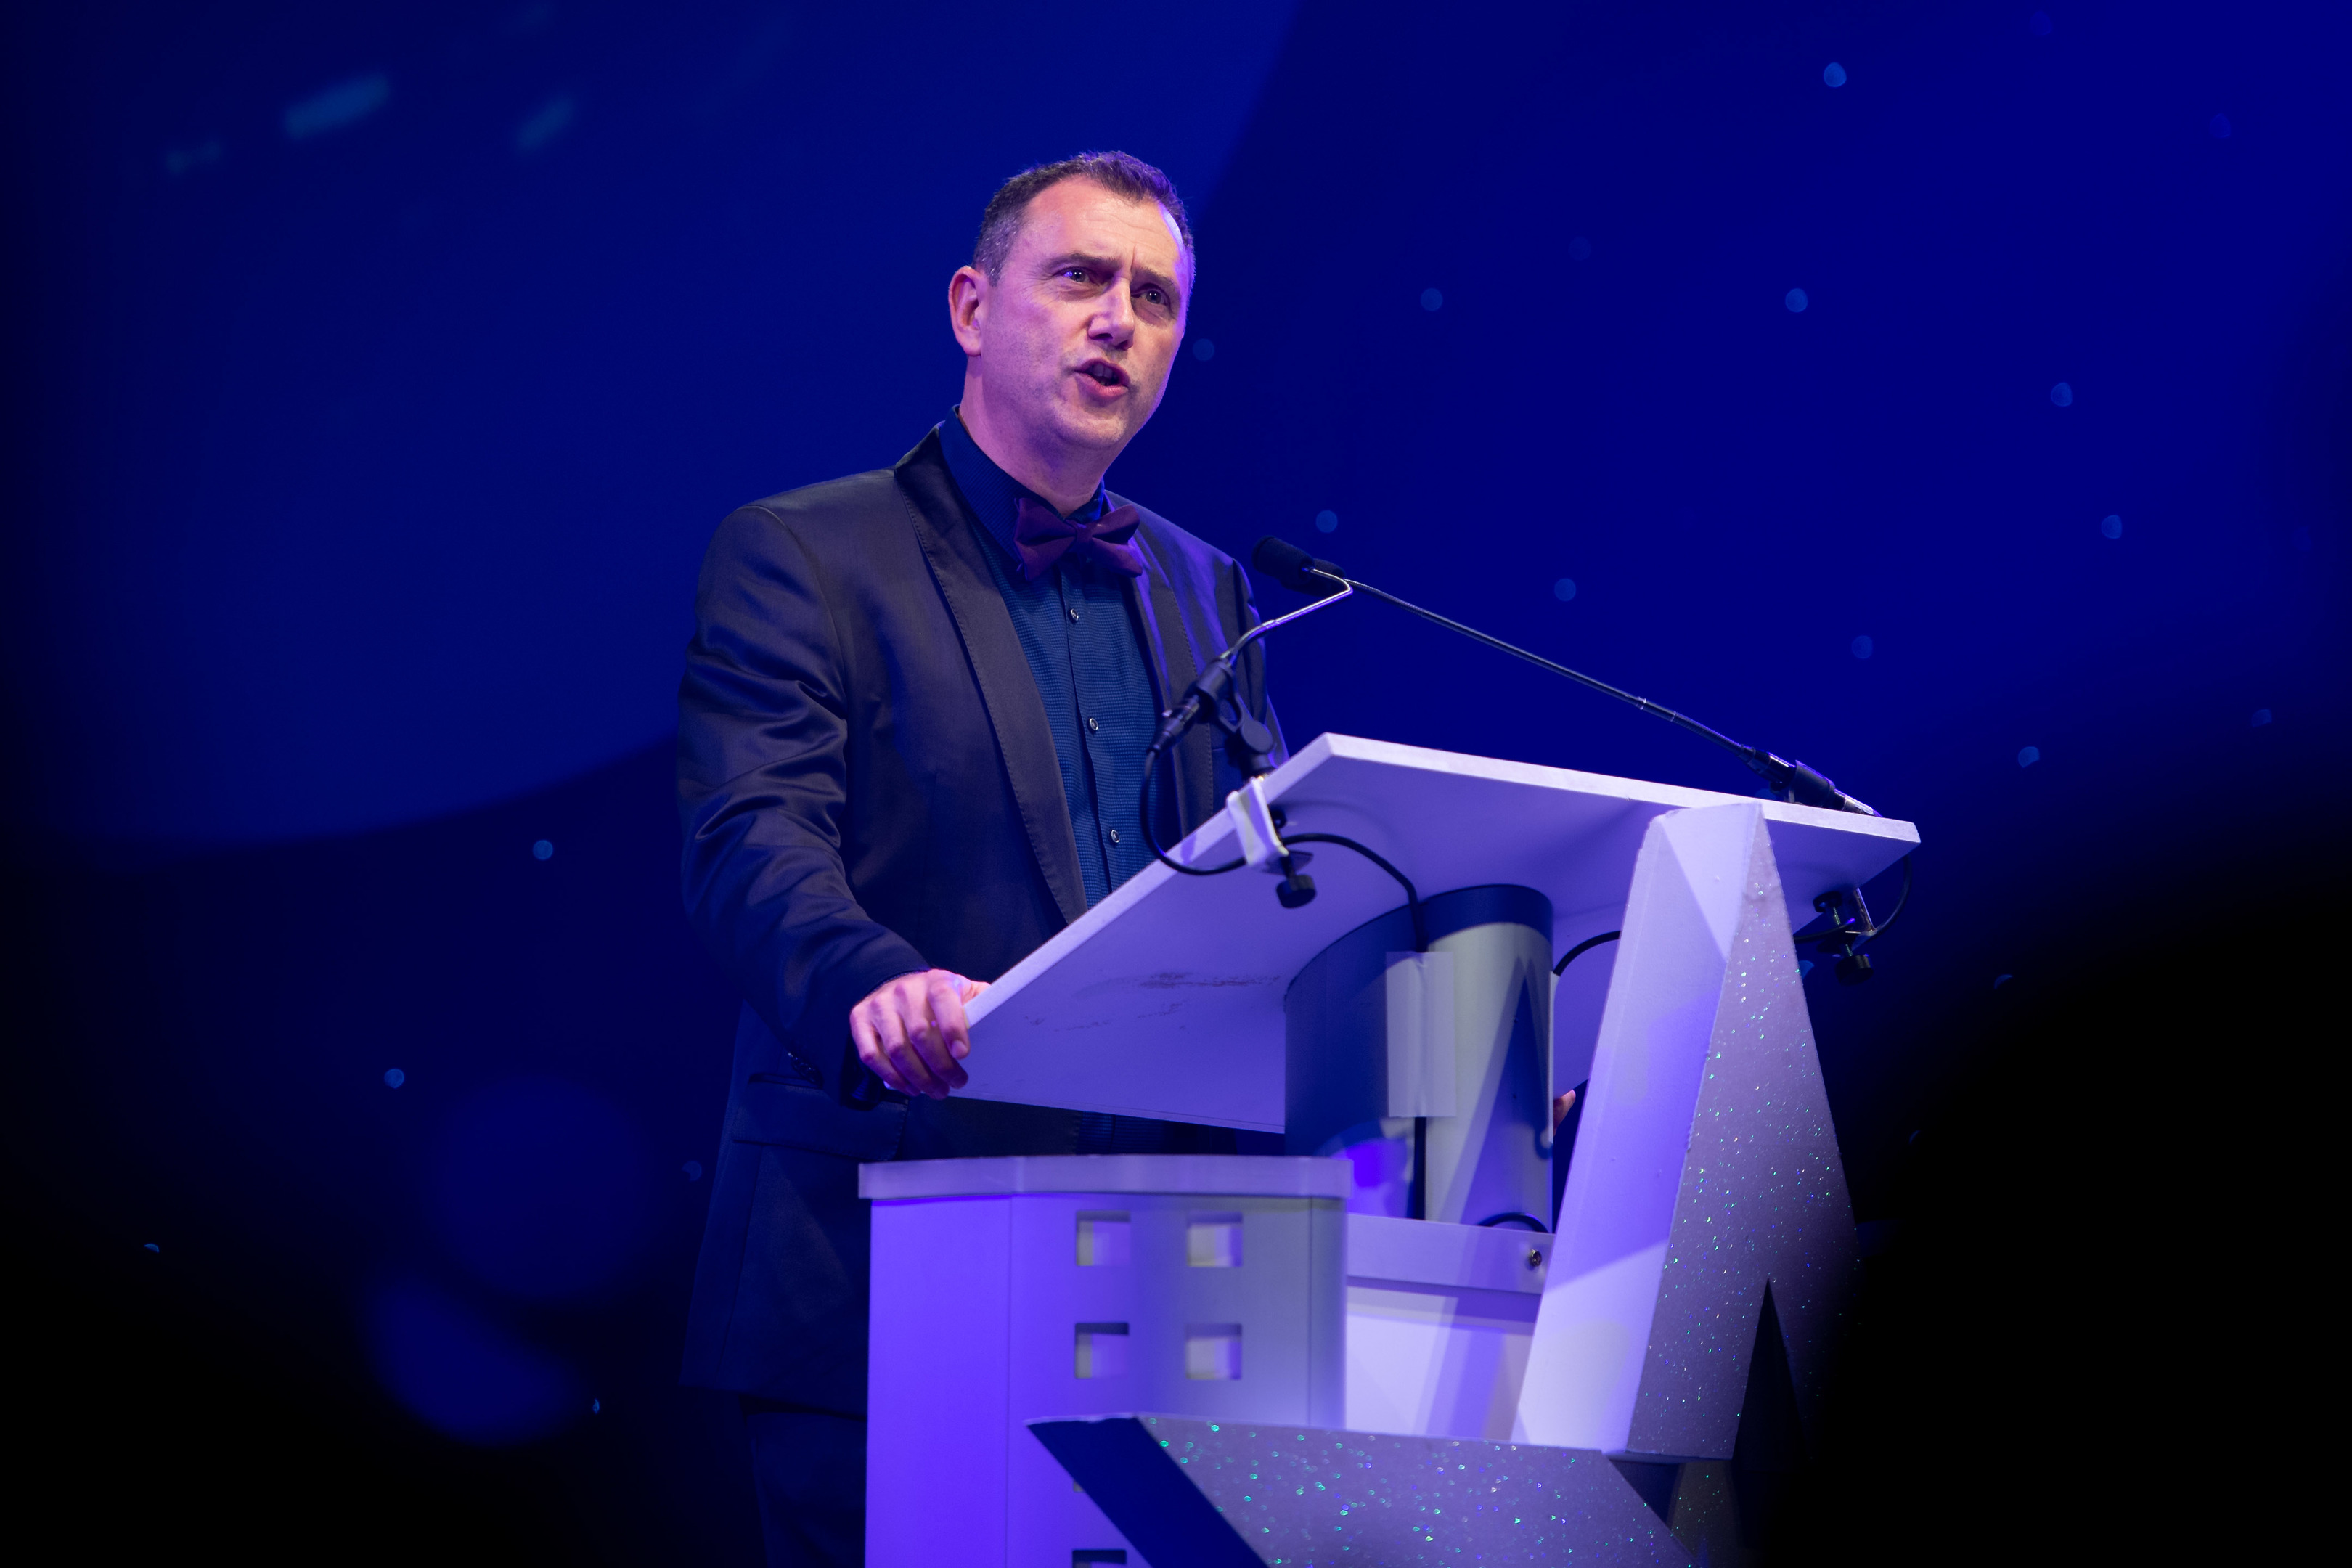 Northern Star Business Awards 2018. Pictured is Aberdeen & Grampian Chamber of Commerce Chief Executive, Russell Borthwick speaking at the awards.